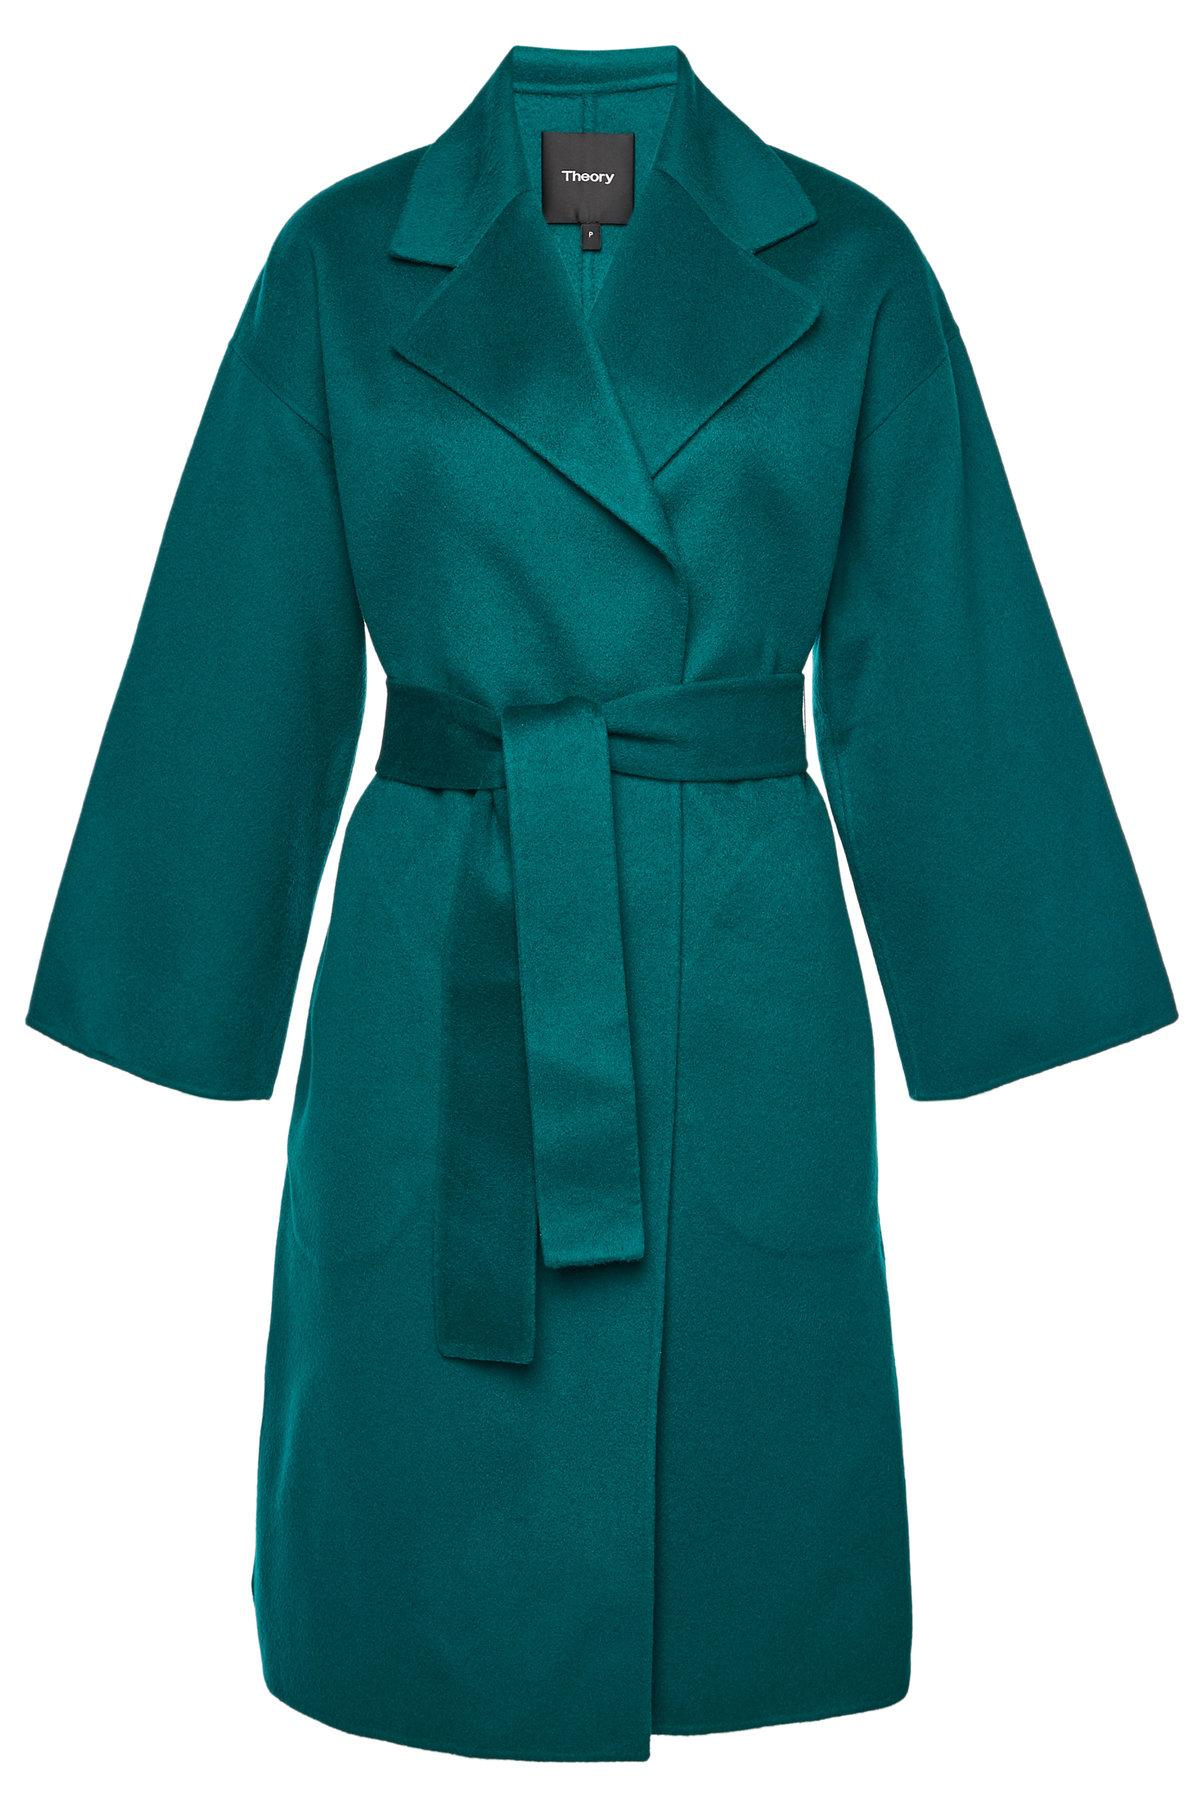 Theory Wool Coat With Cashmere In Green